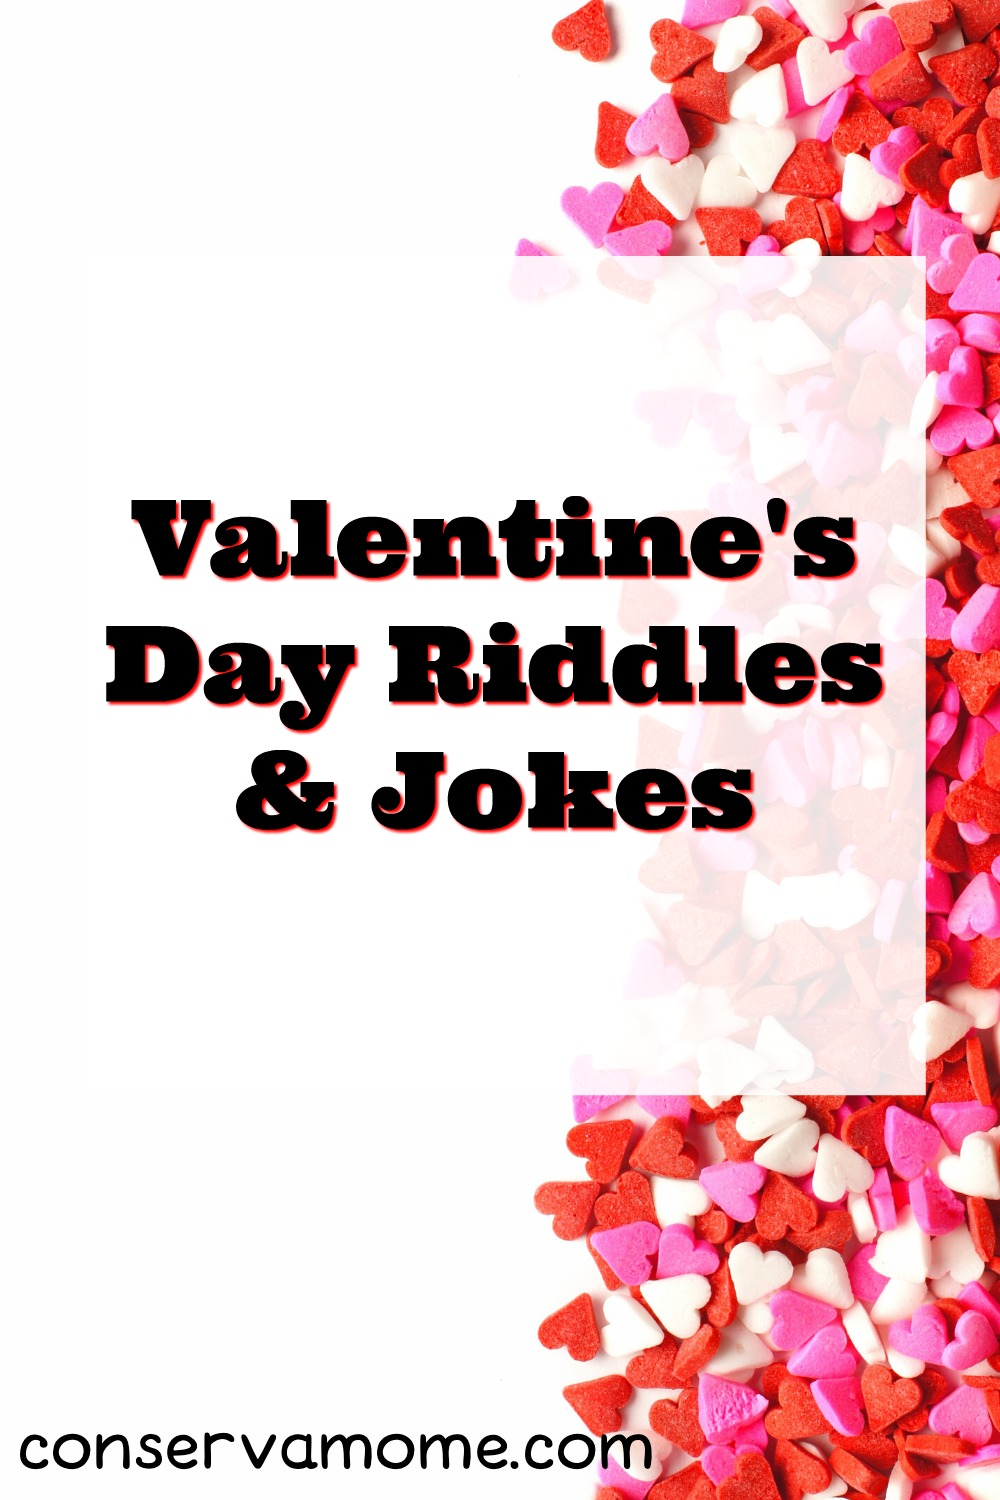 Valentine's Day Riddles